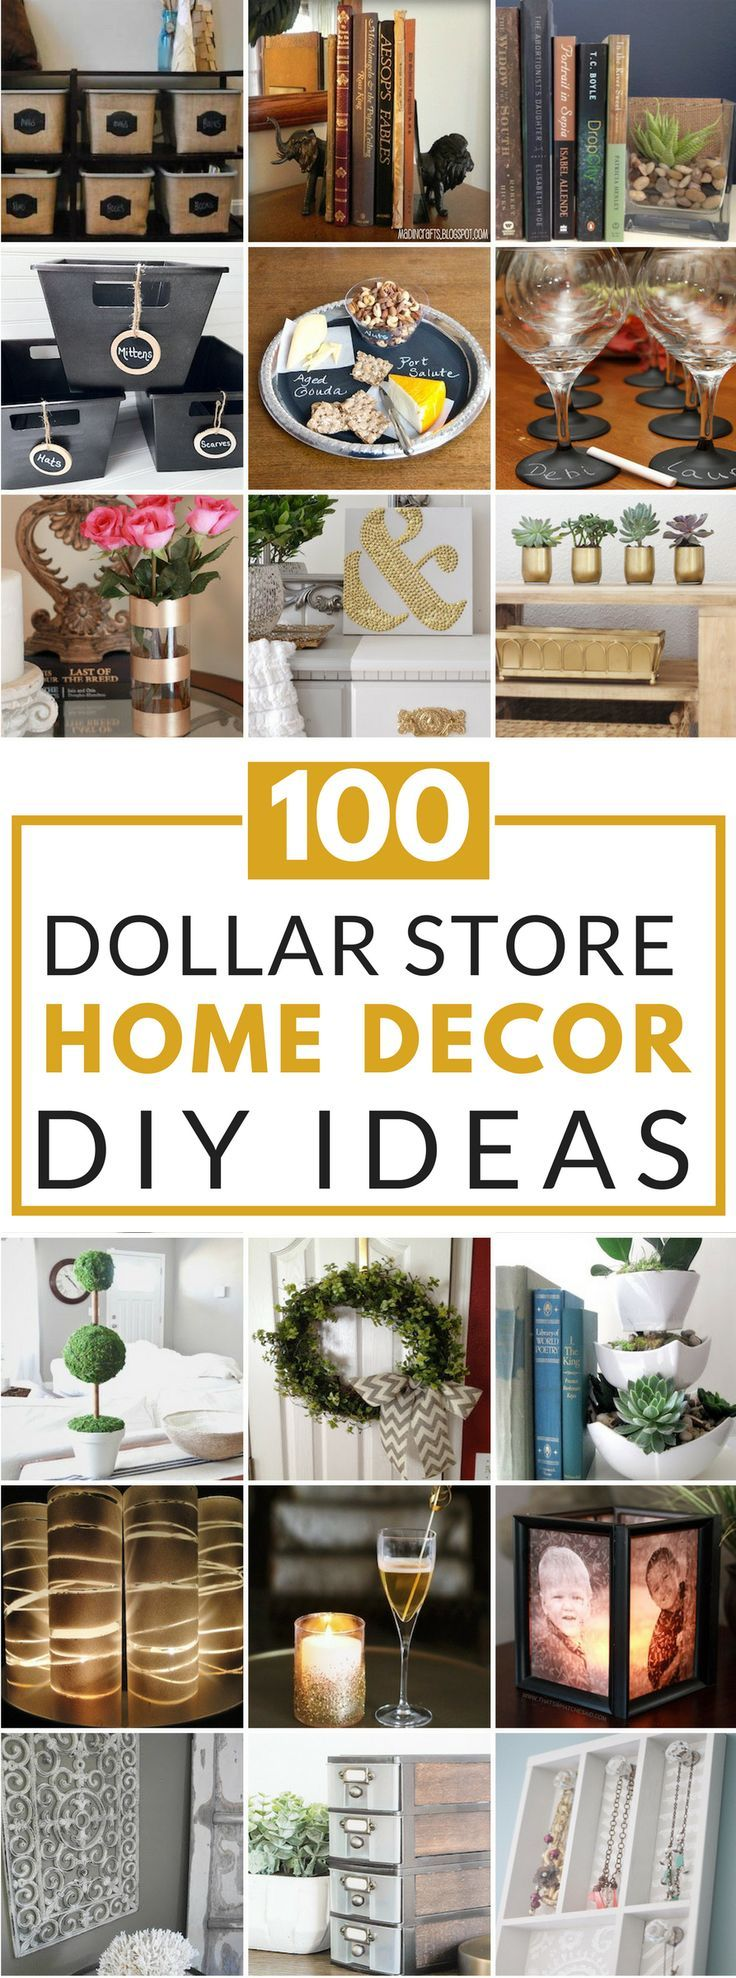 100 Dollar Store Diy Home Decor Ideas Dollar Store Decor Dollar